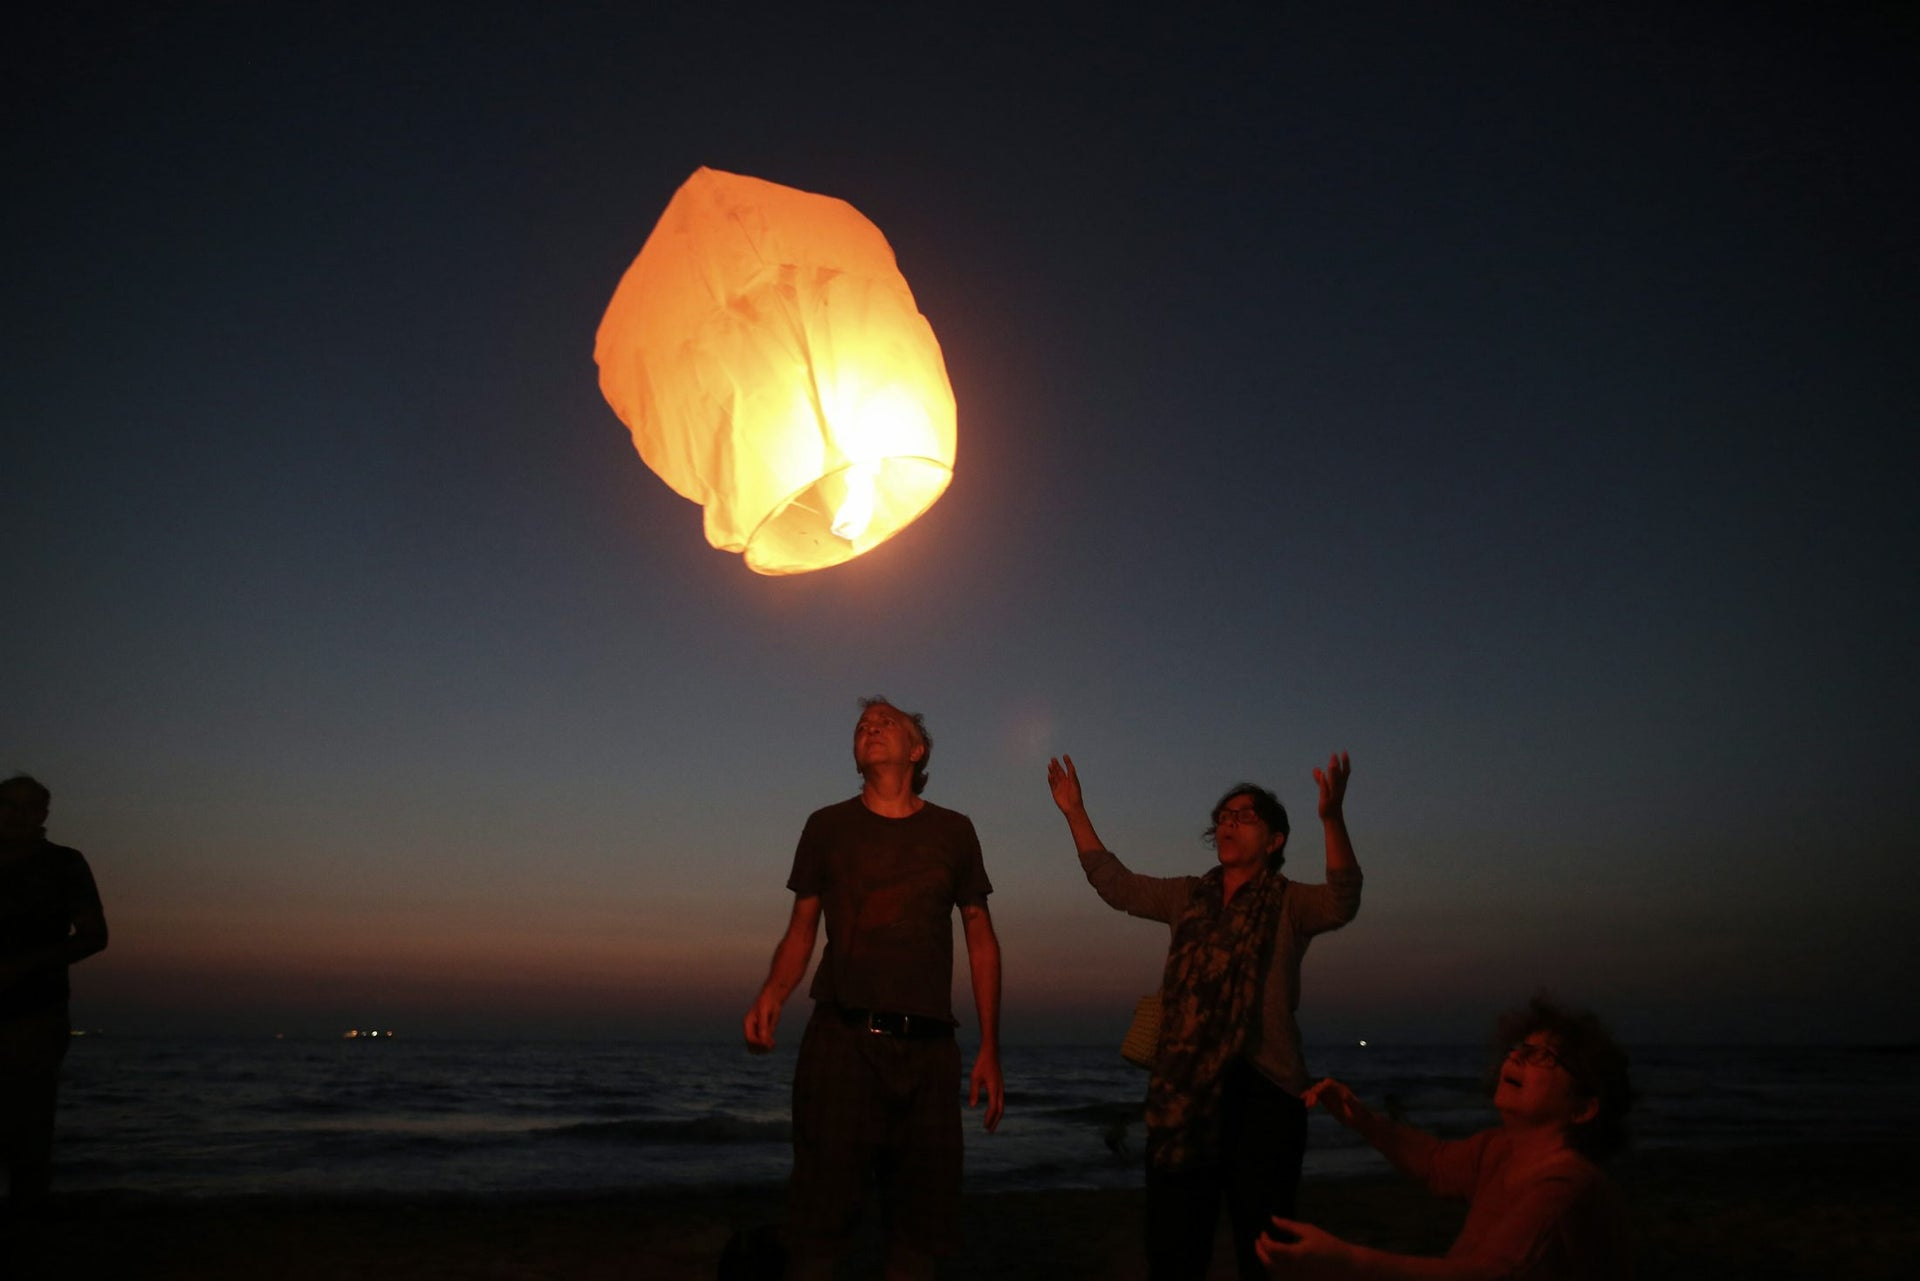 Israeli peace activists release a sky lantern, hoping to illuminate the sky in Gaza, as they protest Israel's reduction of power supply to Gaza at a beach in Ashkelon, southern Israel, June 19, 2017.